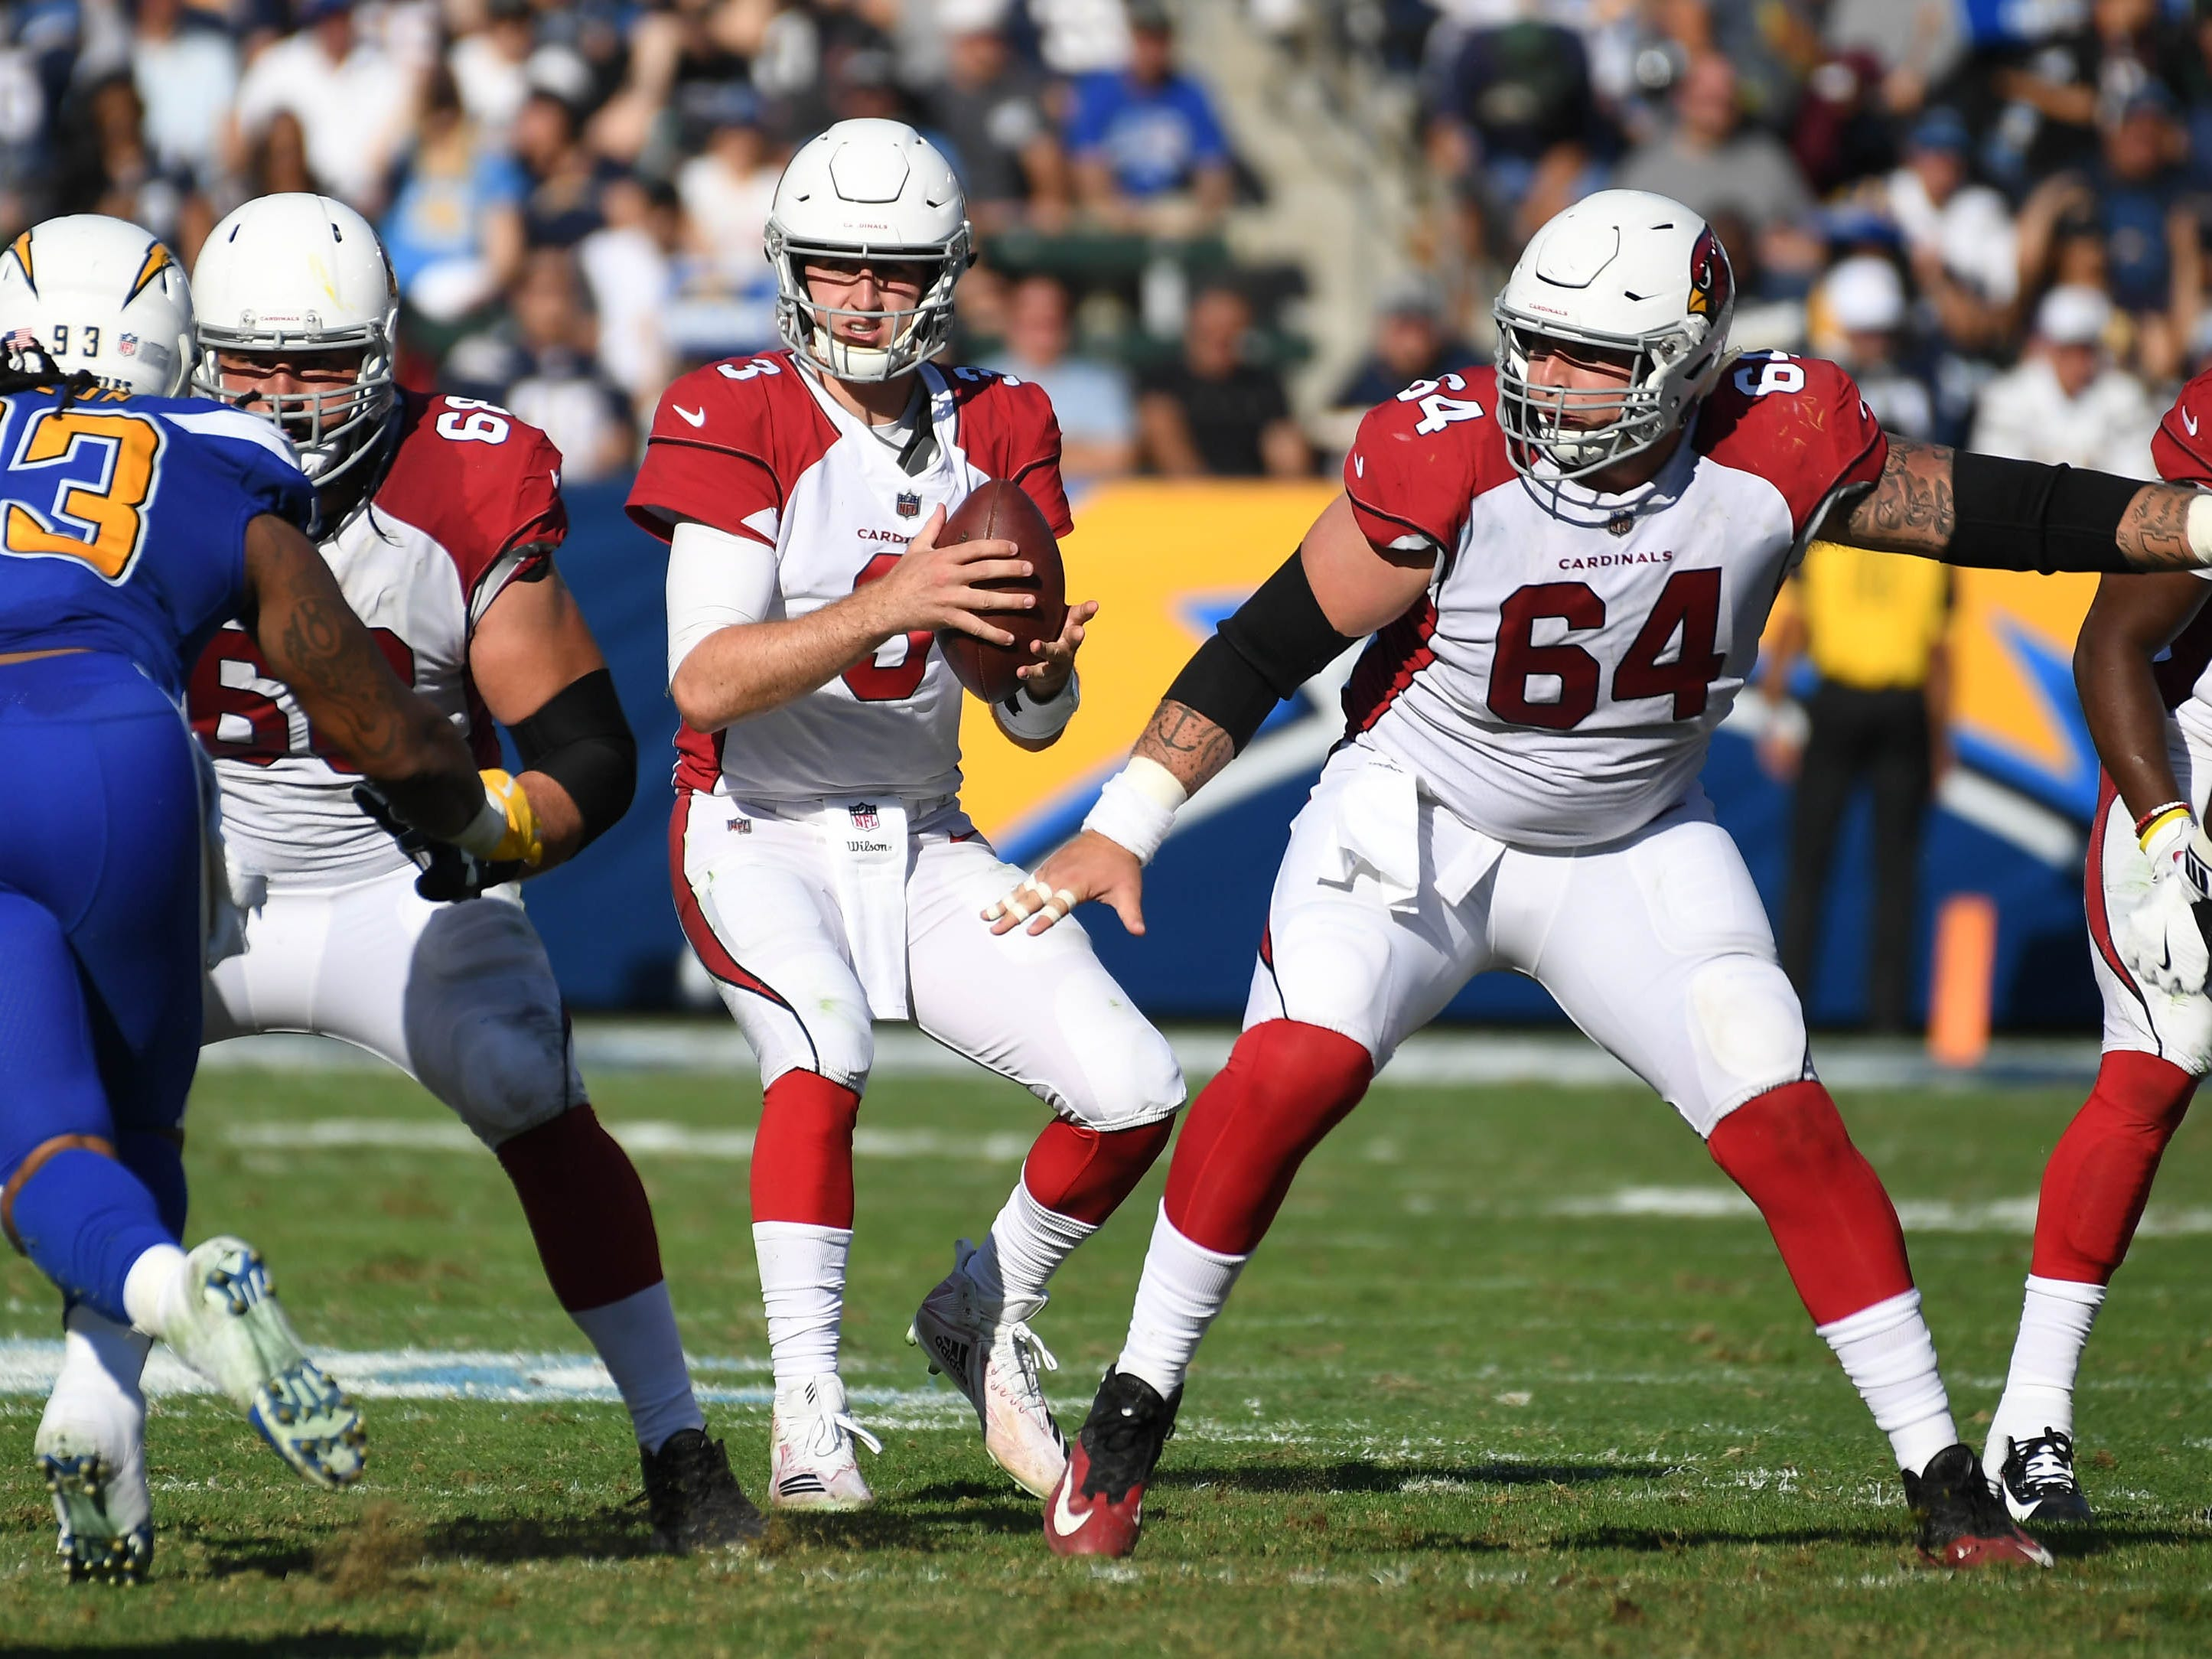 Nov 25, 2018; Carson, CA, USA; Arizona Cardinals quarterback Josh Rosen (3) drops back to pass against the Los Angeles Chargers in the first half at the StubHub Center. Mandatory Credit: Richard Mackson-USA TODAY Sports